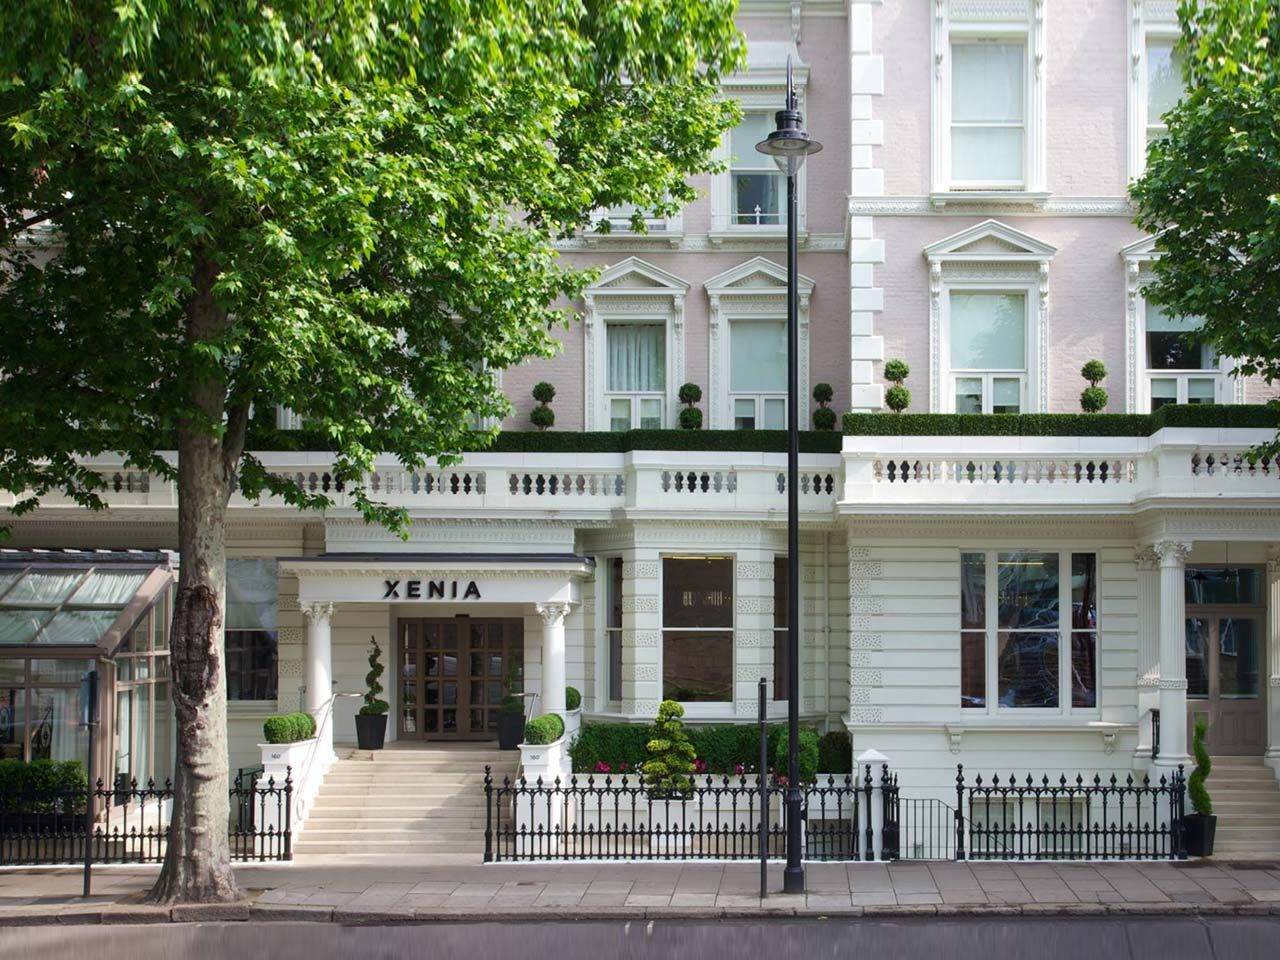 Hotel Xenia London In South Kensington Small Boutique Hotel With